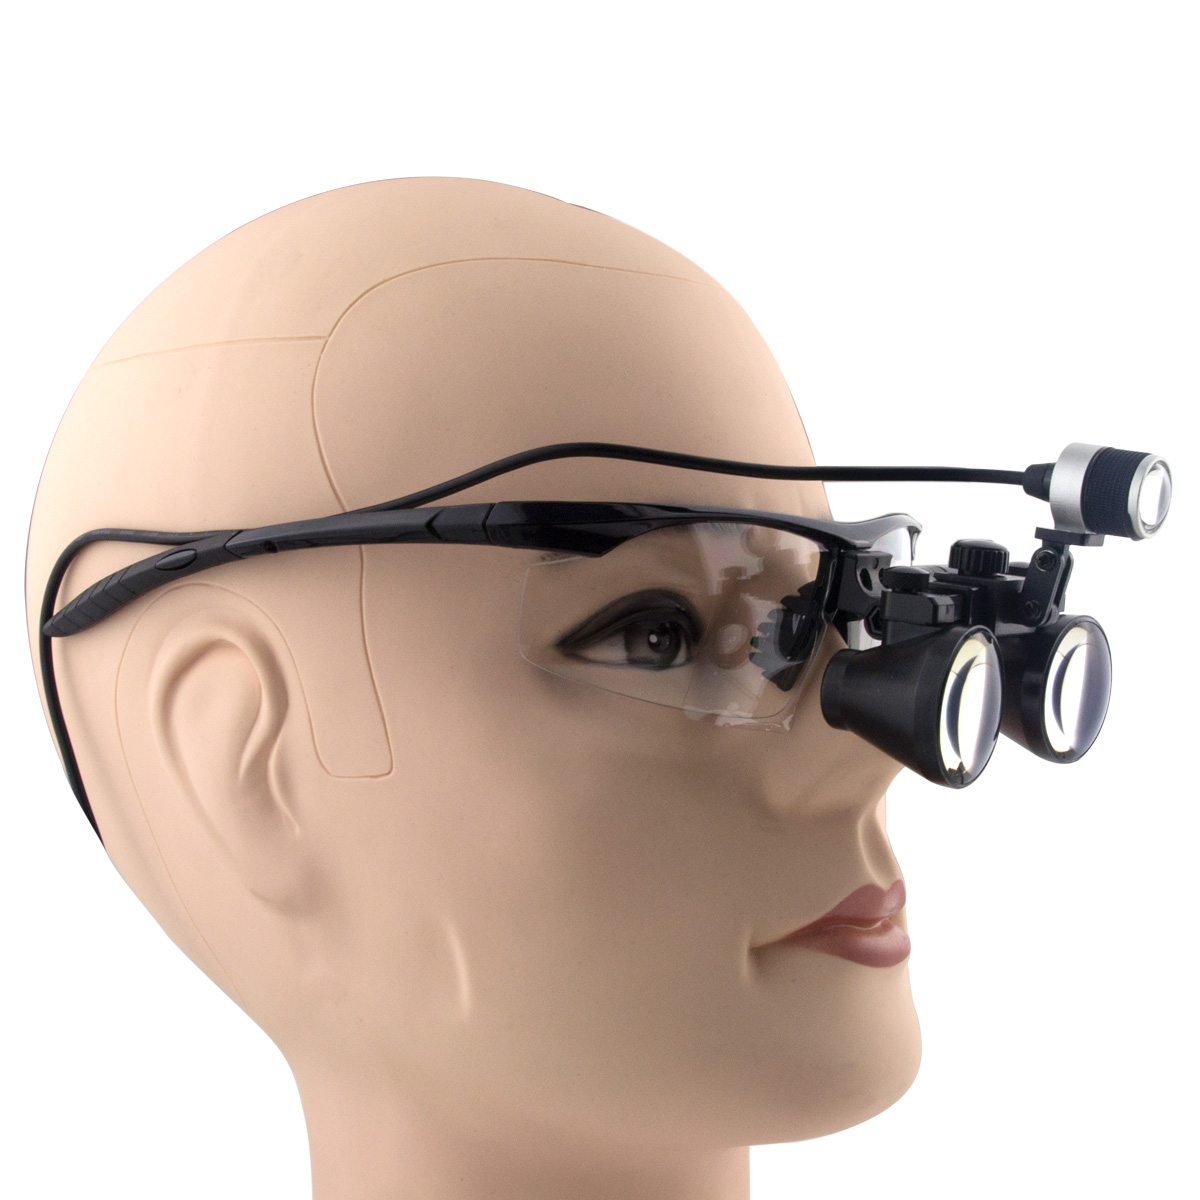 3 0x Magnification Bp Sports Frame Professional Dental Loupes Glasses With Mounted Led Head